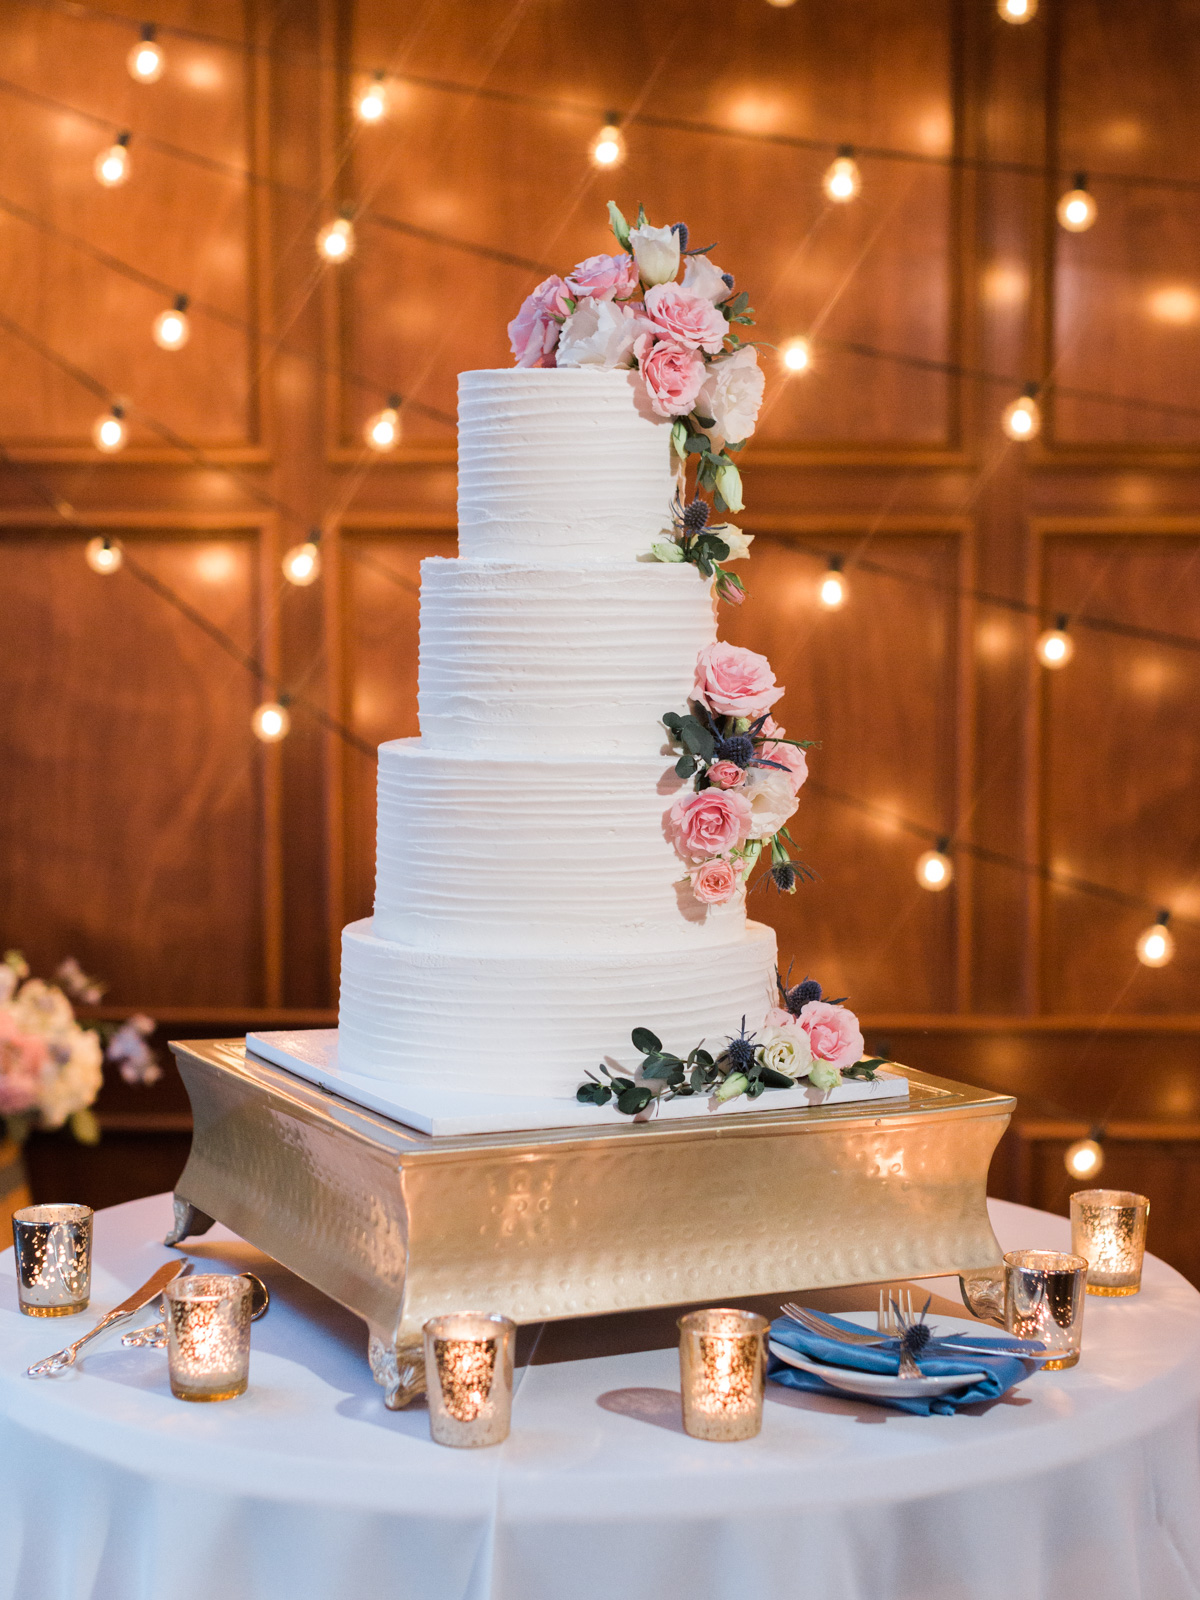 Beautiful wedding cake by Laura Marie's Cakes |Harrison & Jocelyne's gorgeous Temecula wedding day at Wiens Family Cellars captured by Temecula wedding photographers Betsy & John